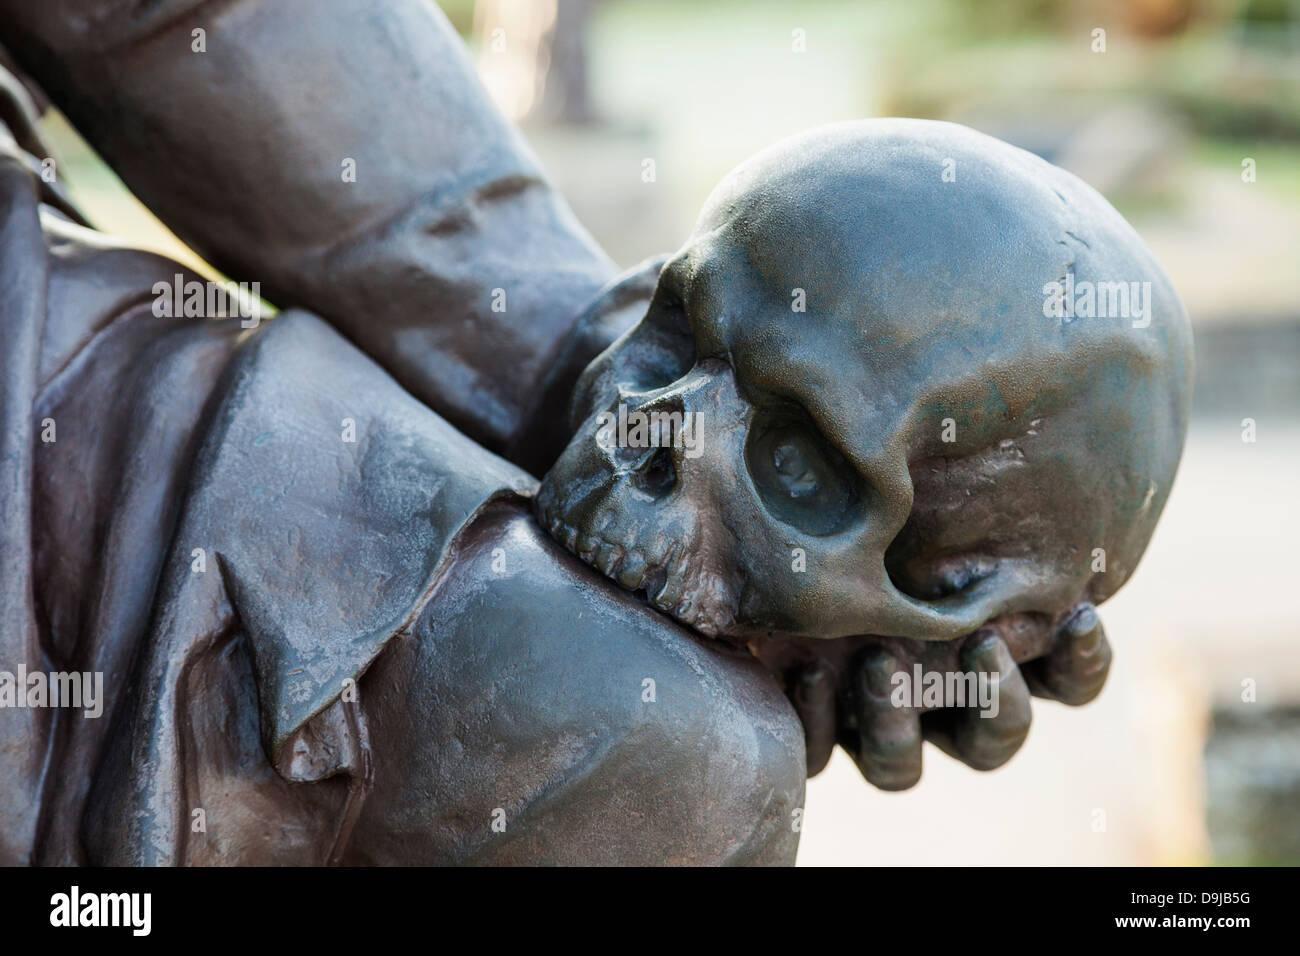 England, Warwickshire, Stratford-upon-Avon, Bancroft Gardens, Gower Memorial, Detail of Hamlet's Hand Holding - Stock Image